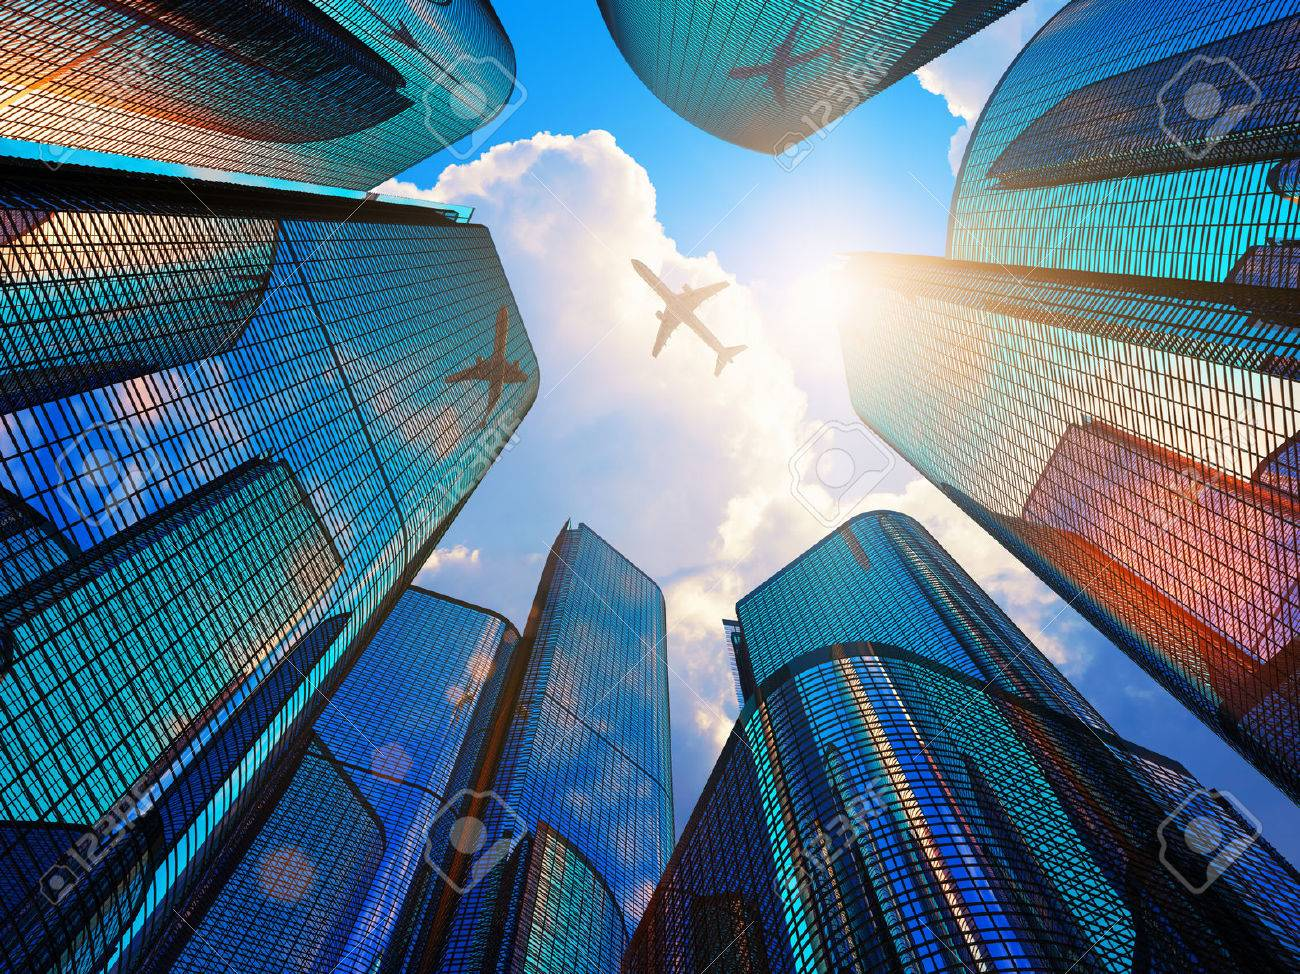 Creative abstract business corporate construction industry and real estate financial concept: blue modern high tall glass reflective skyscrapers in city downtown district with sun light and airliner - 44559554